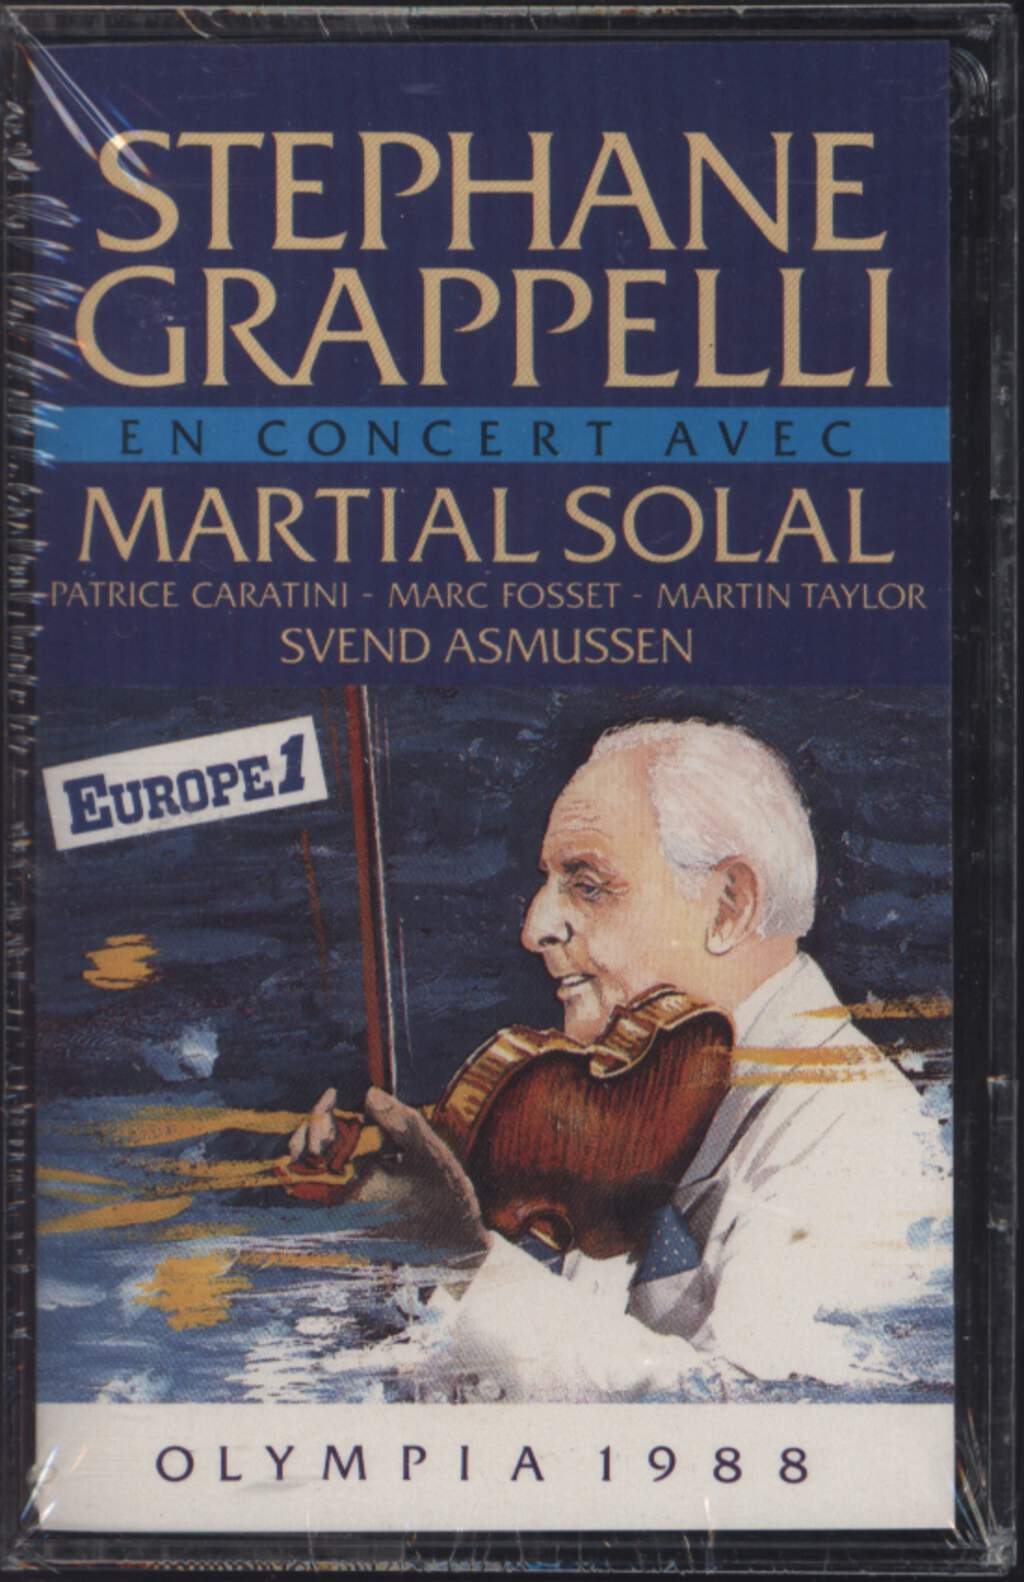 Stéphane Grappelli: Olympia 1988, Compact Cassette